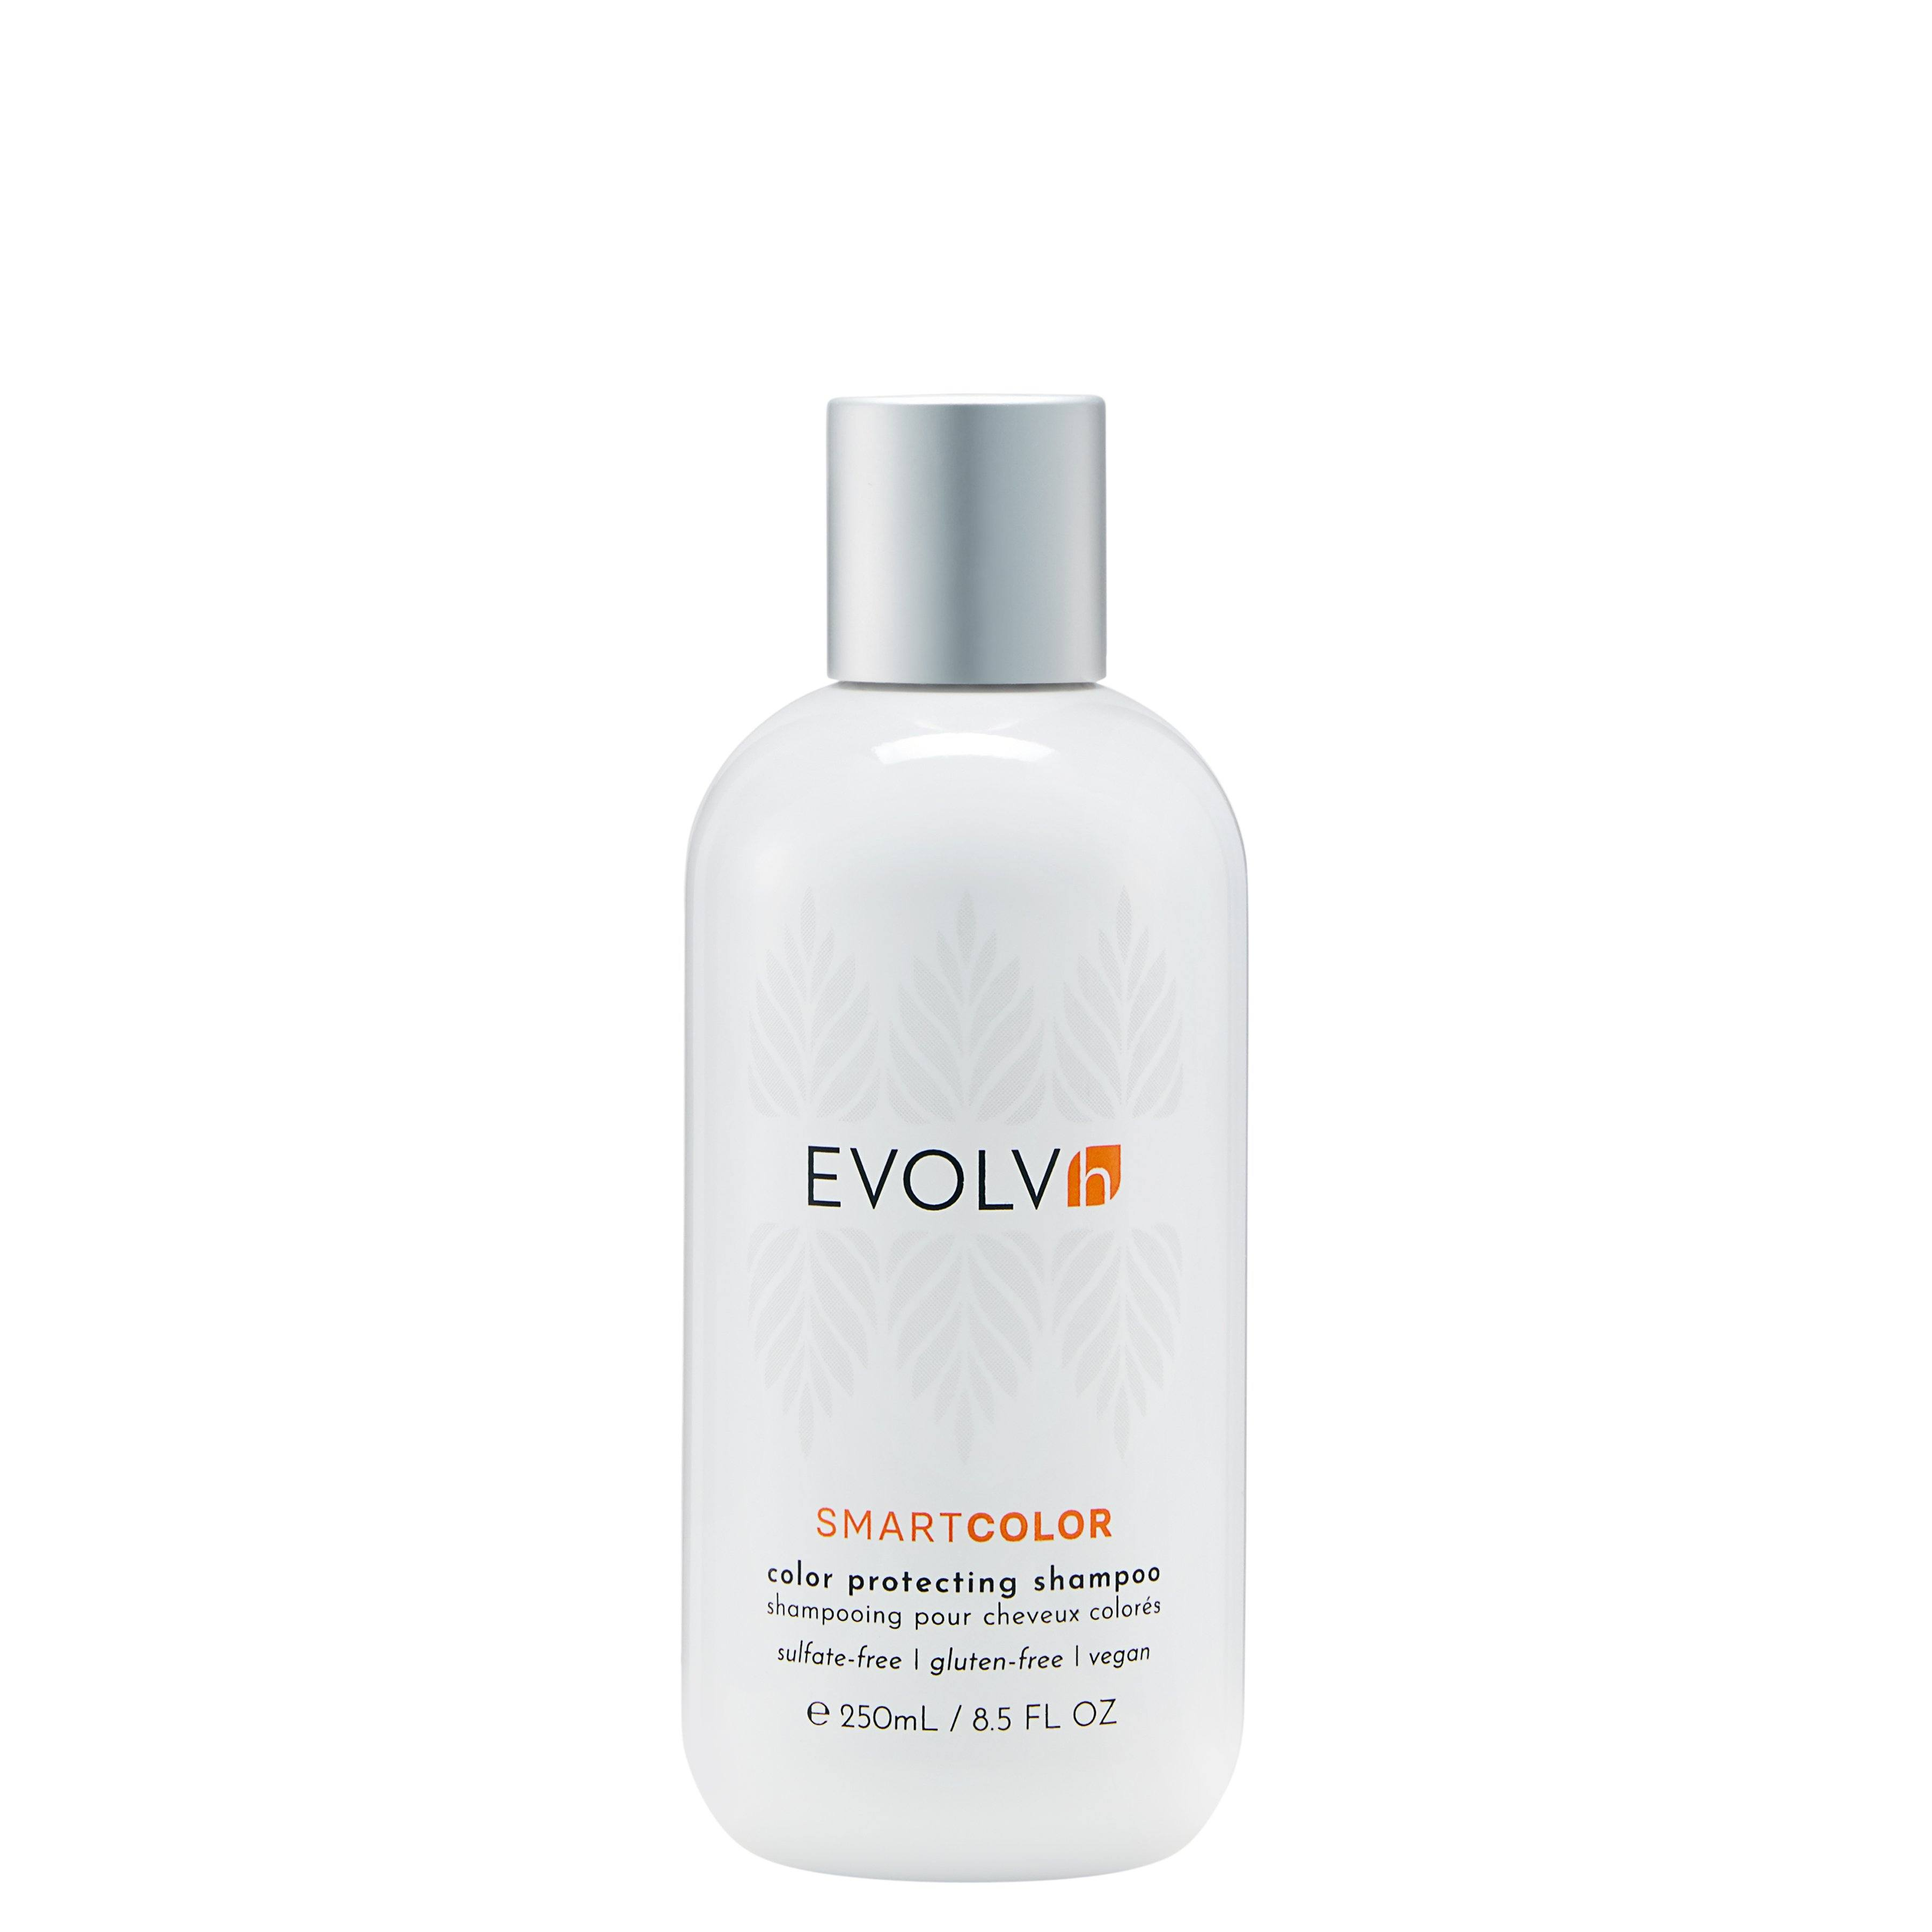 SmartColor Color Protecting Shampoo